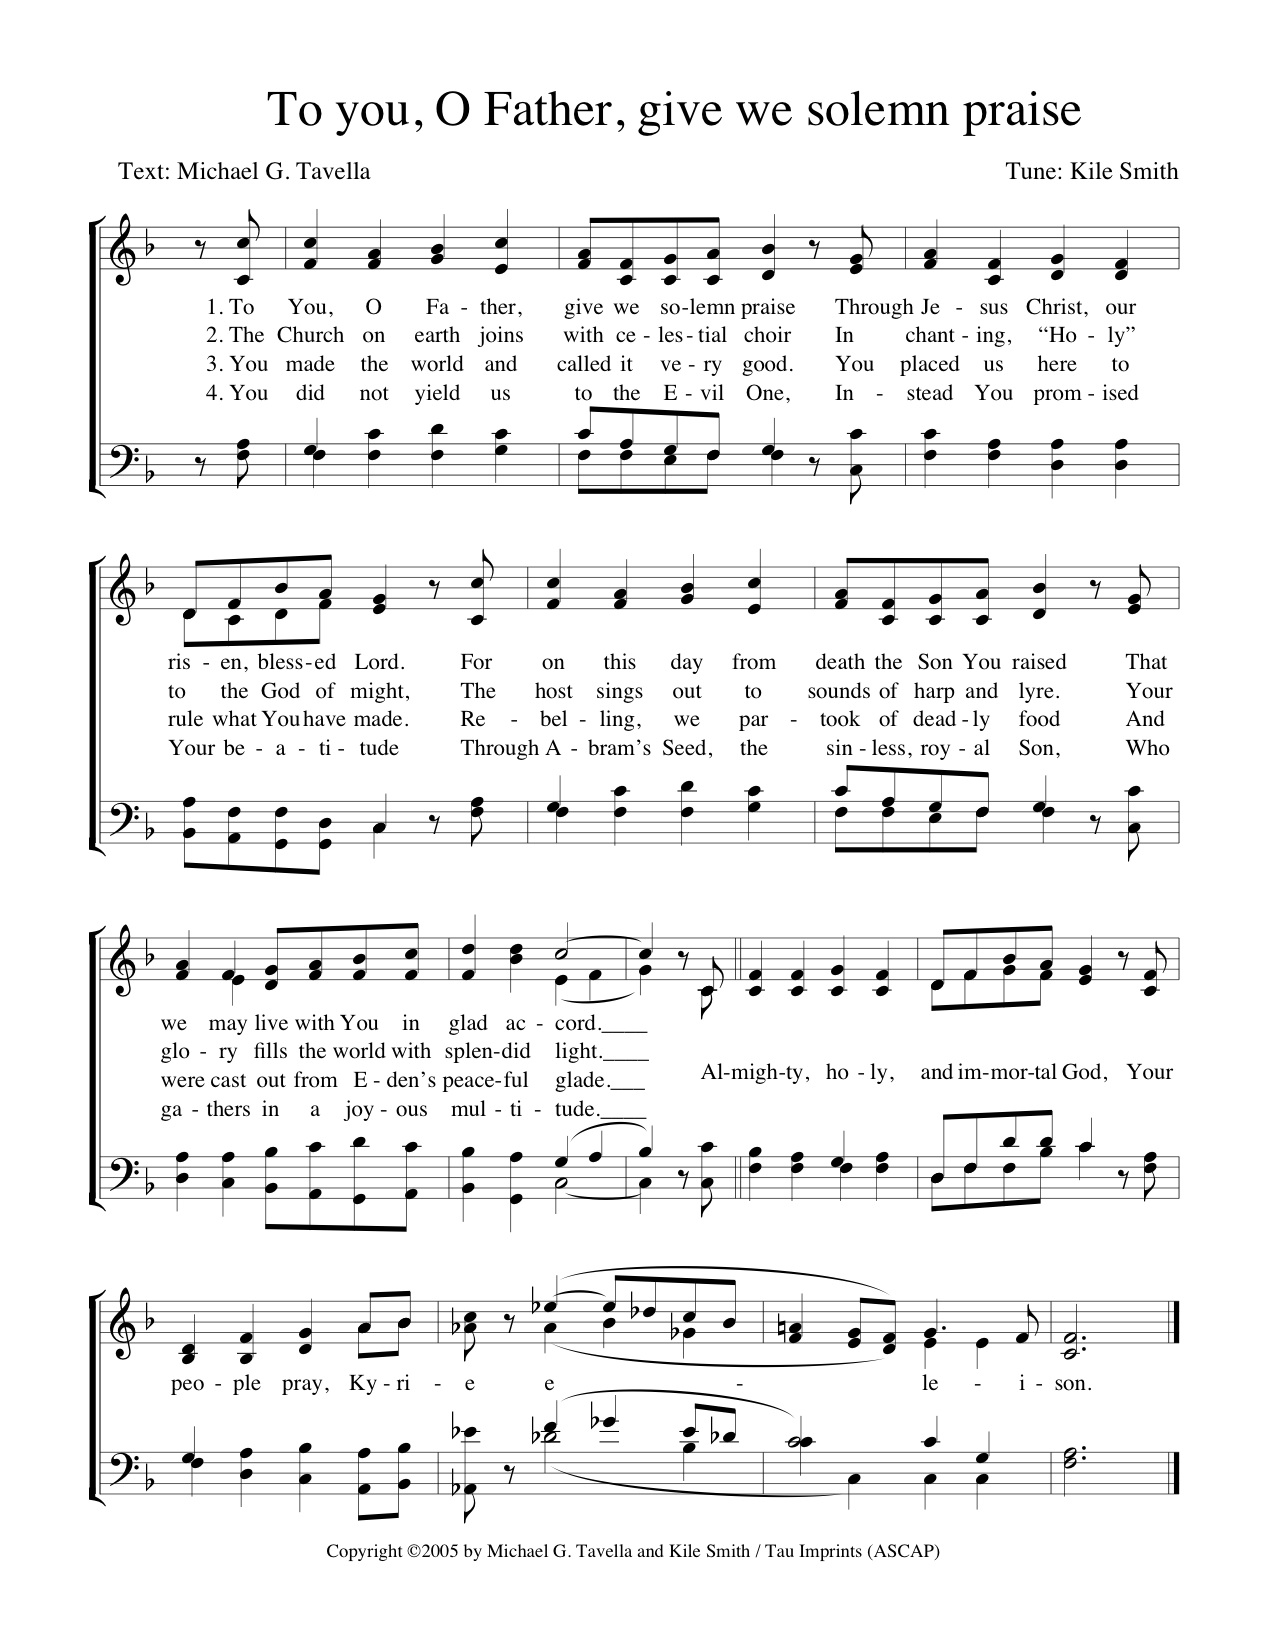 Ly lyrics to something about my praise - Canticle Canticle Commissioned By The Vocal Arts Ensemble